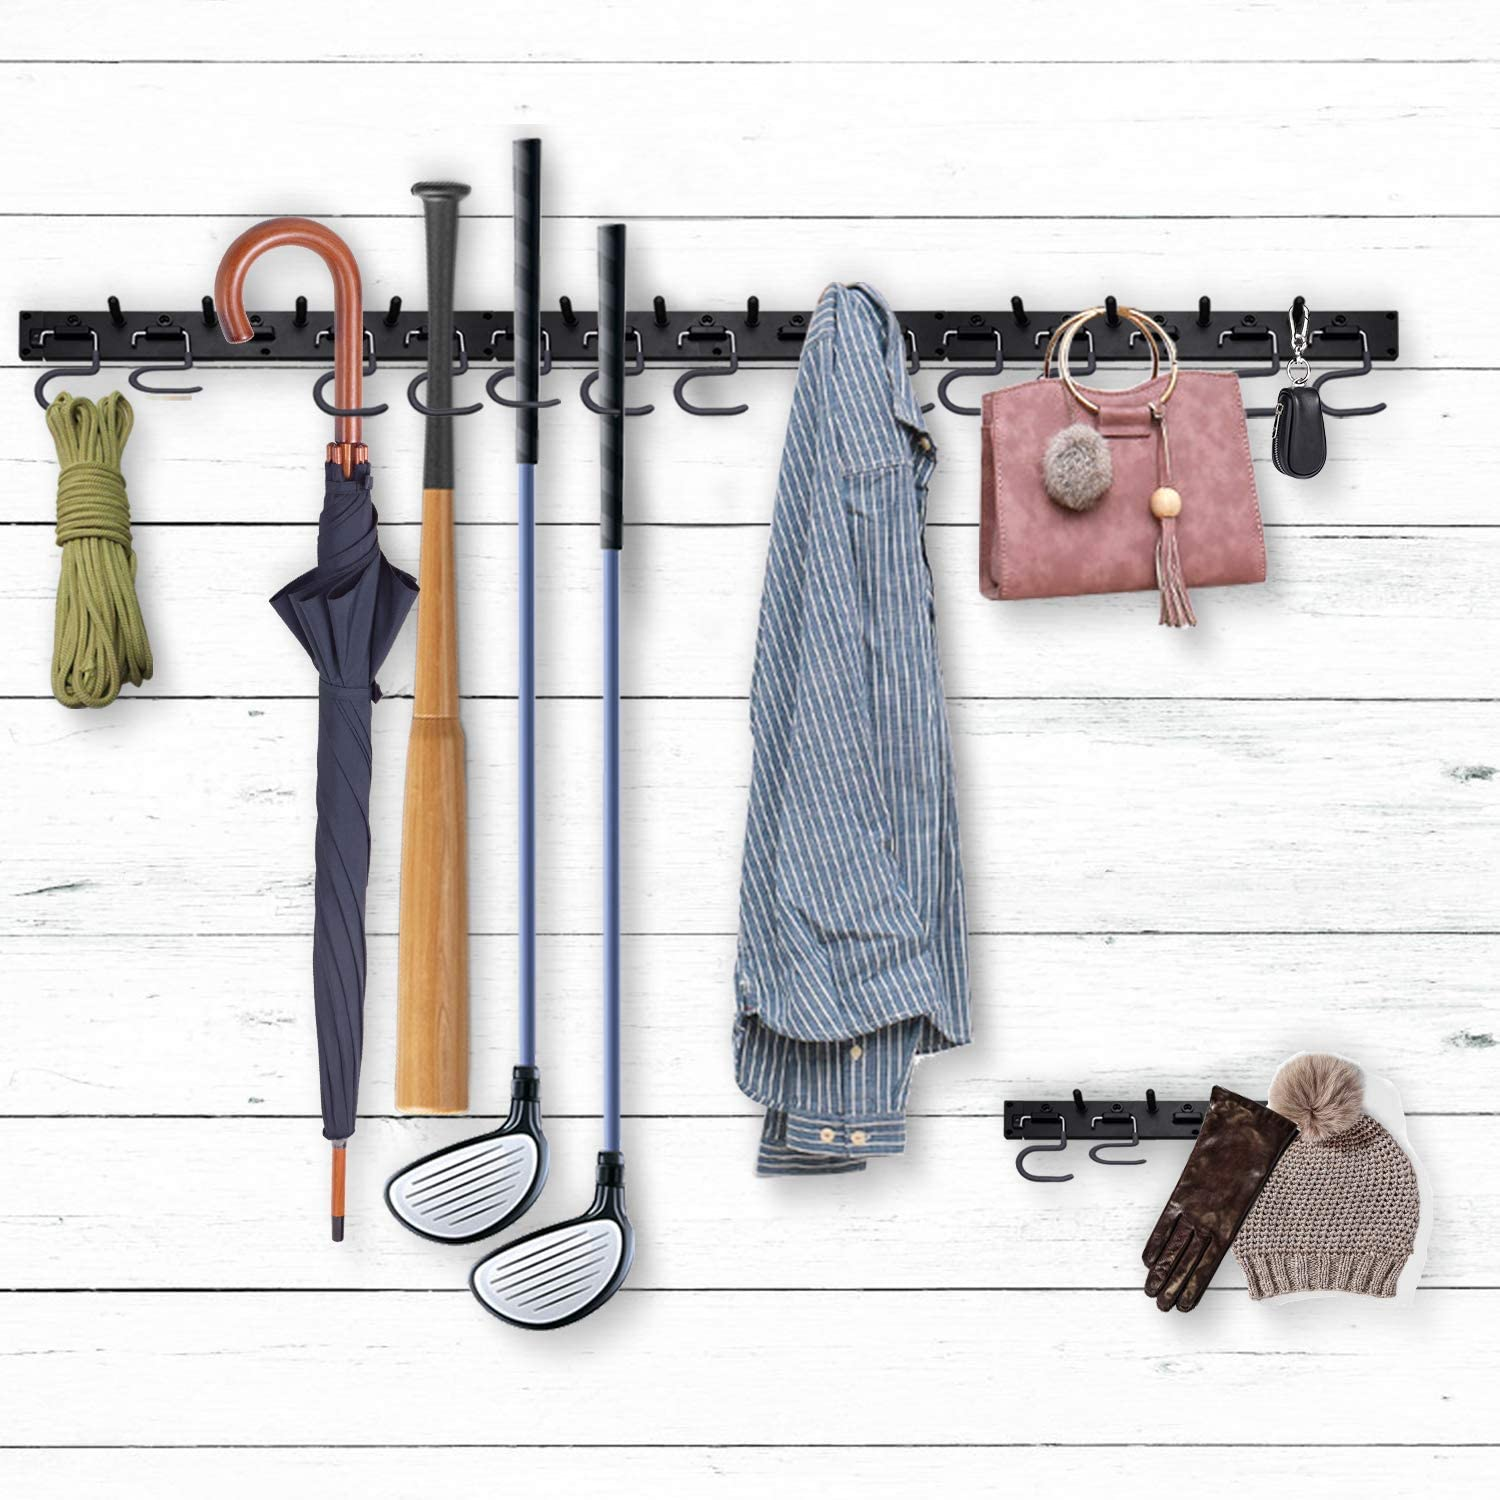 NZACE Adjustable Storage System 48 Inch, Wall Holders for Tools, Wall Mount Tool Organizer, Garage Organizer, Garden Tool Organizer, Garage Storage, Heavy Duty Tools Hanger with 3 Rails 12 Hooks - -